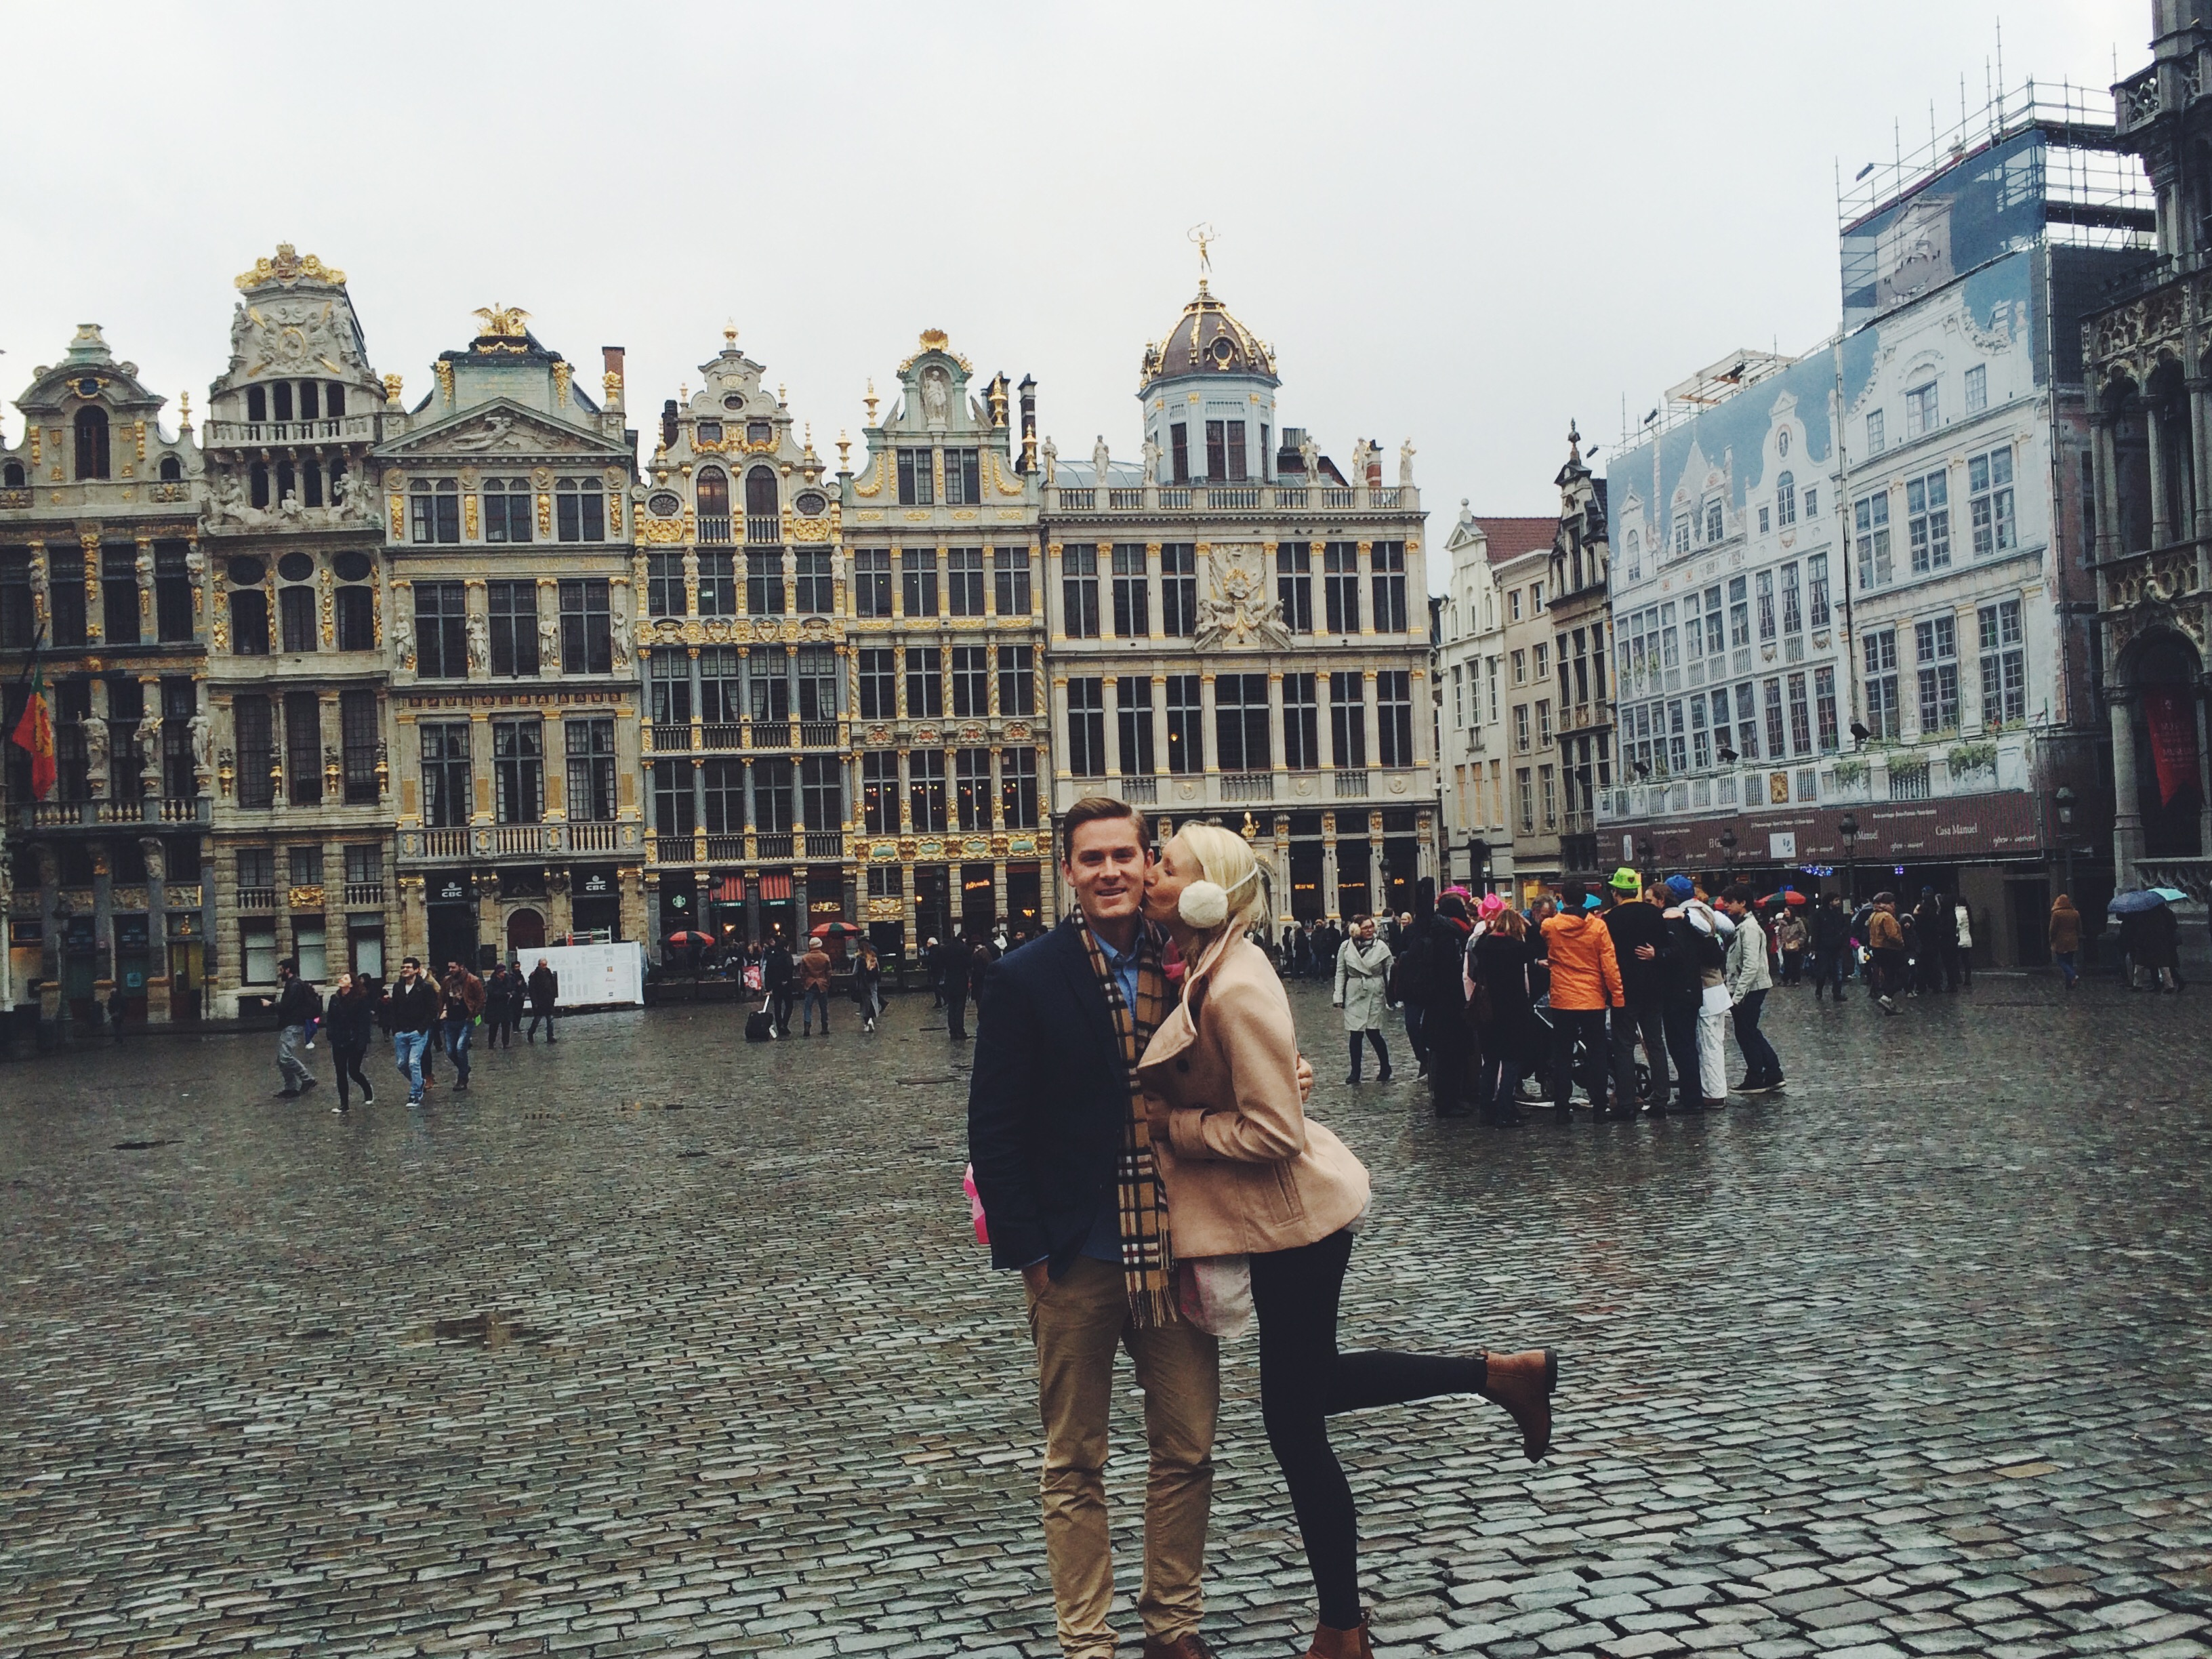 brussels for valentine's day